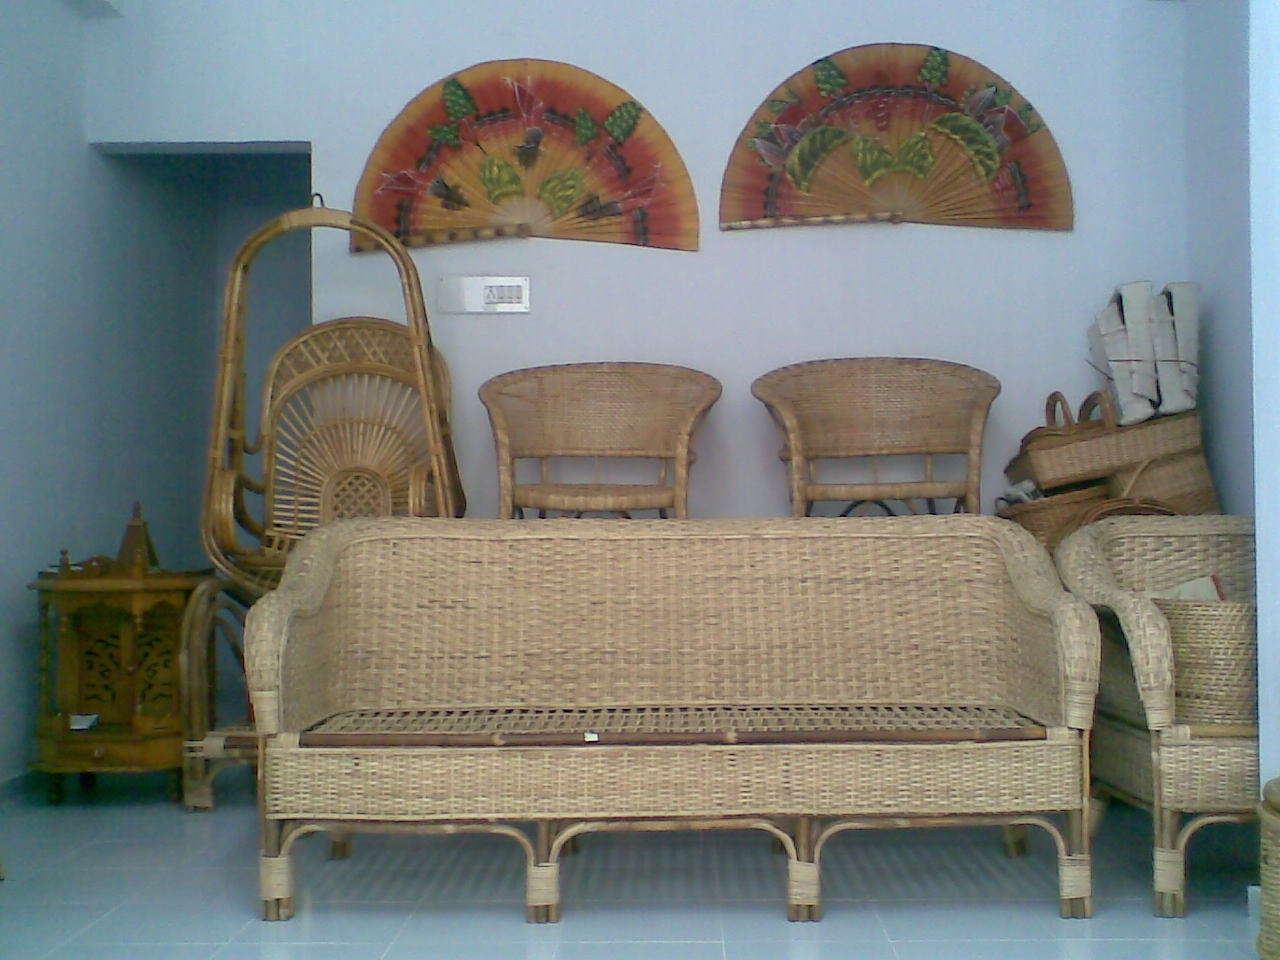 100 Wooden Sofa Online India Buy Low Height  : 381 from mitzissister.com size 1280 x 960 jpeg 540kB